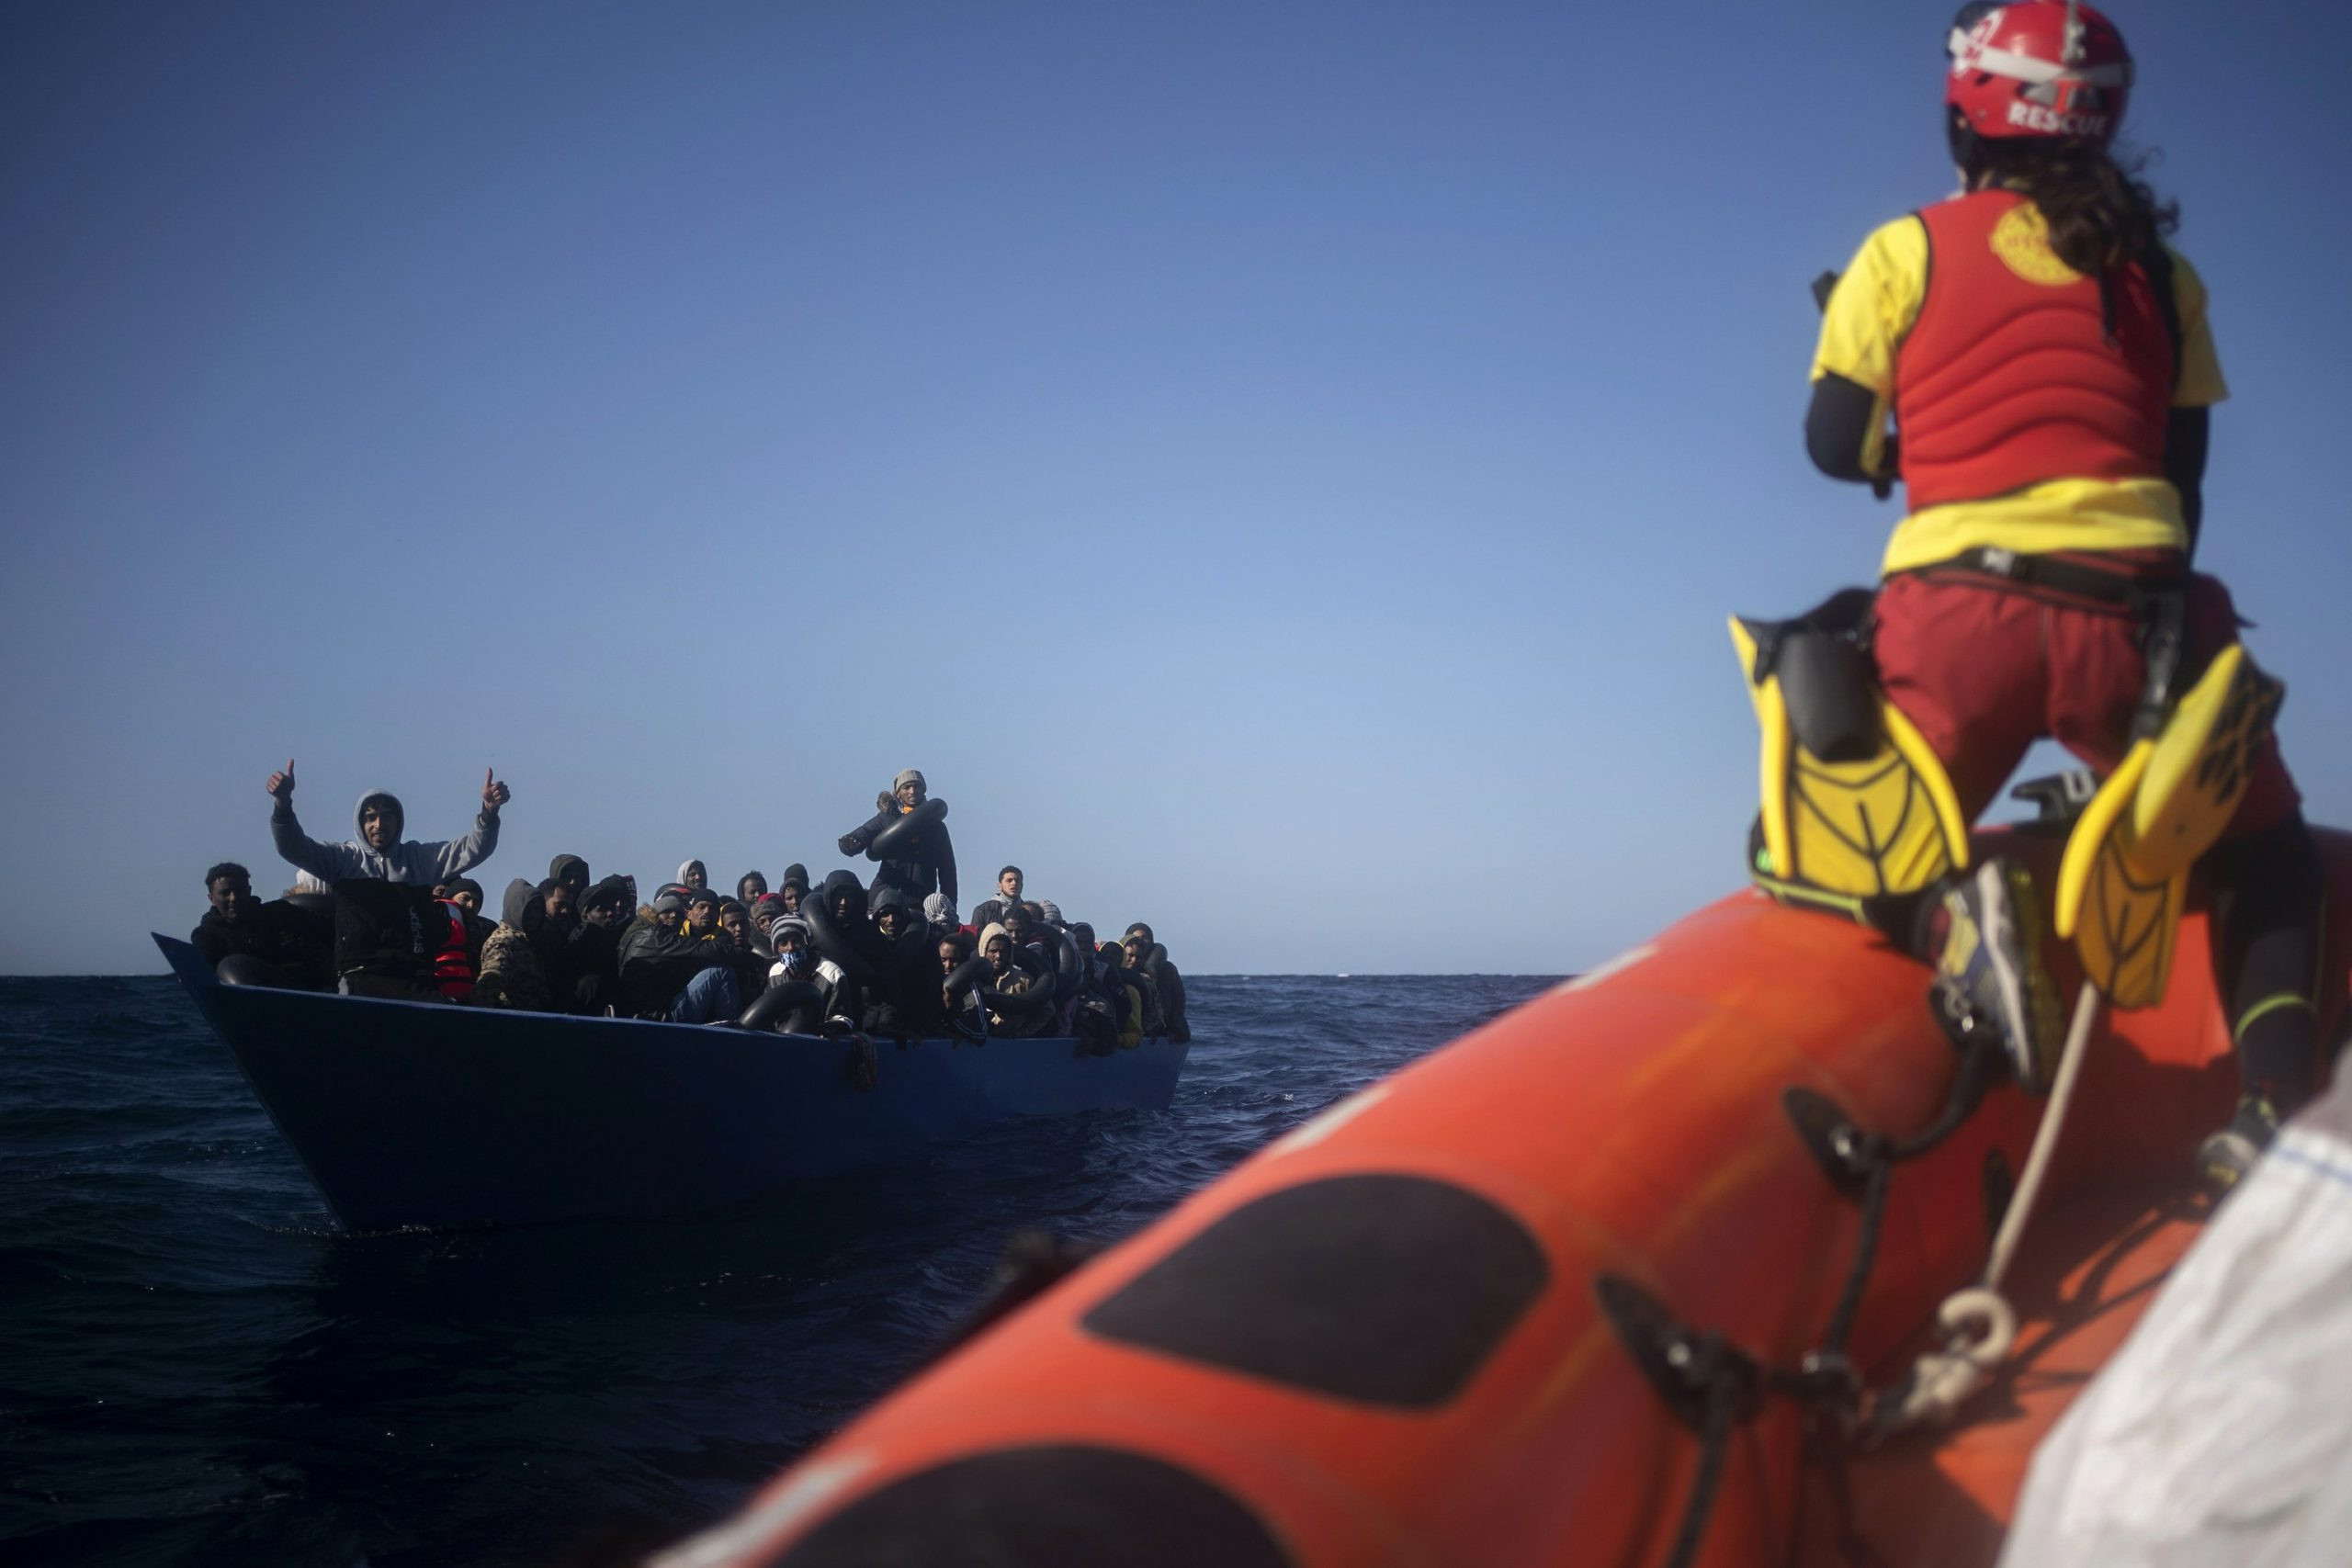 A boat raising the Spanish flag rescues 265 migrants in the Mediterranean